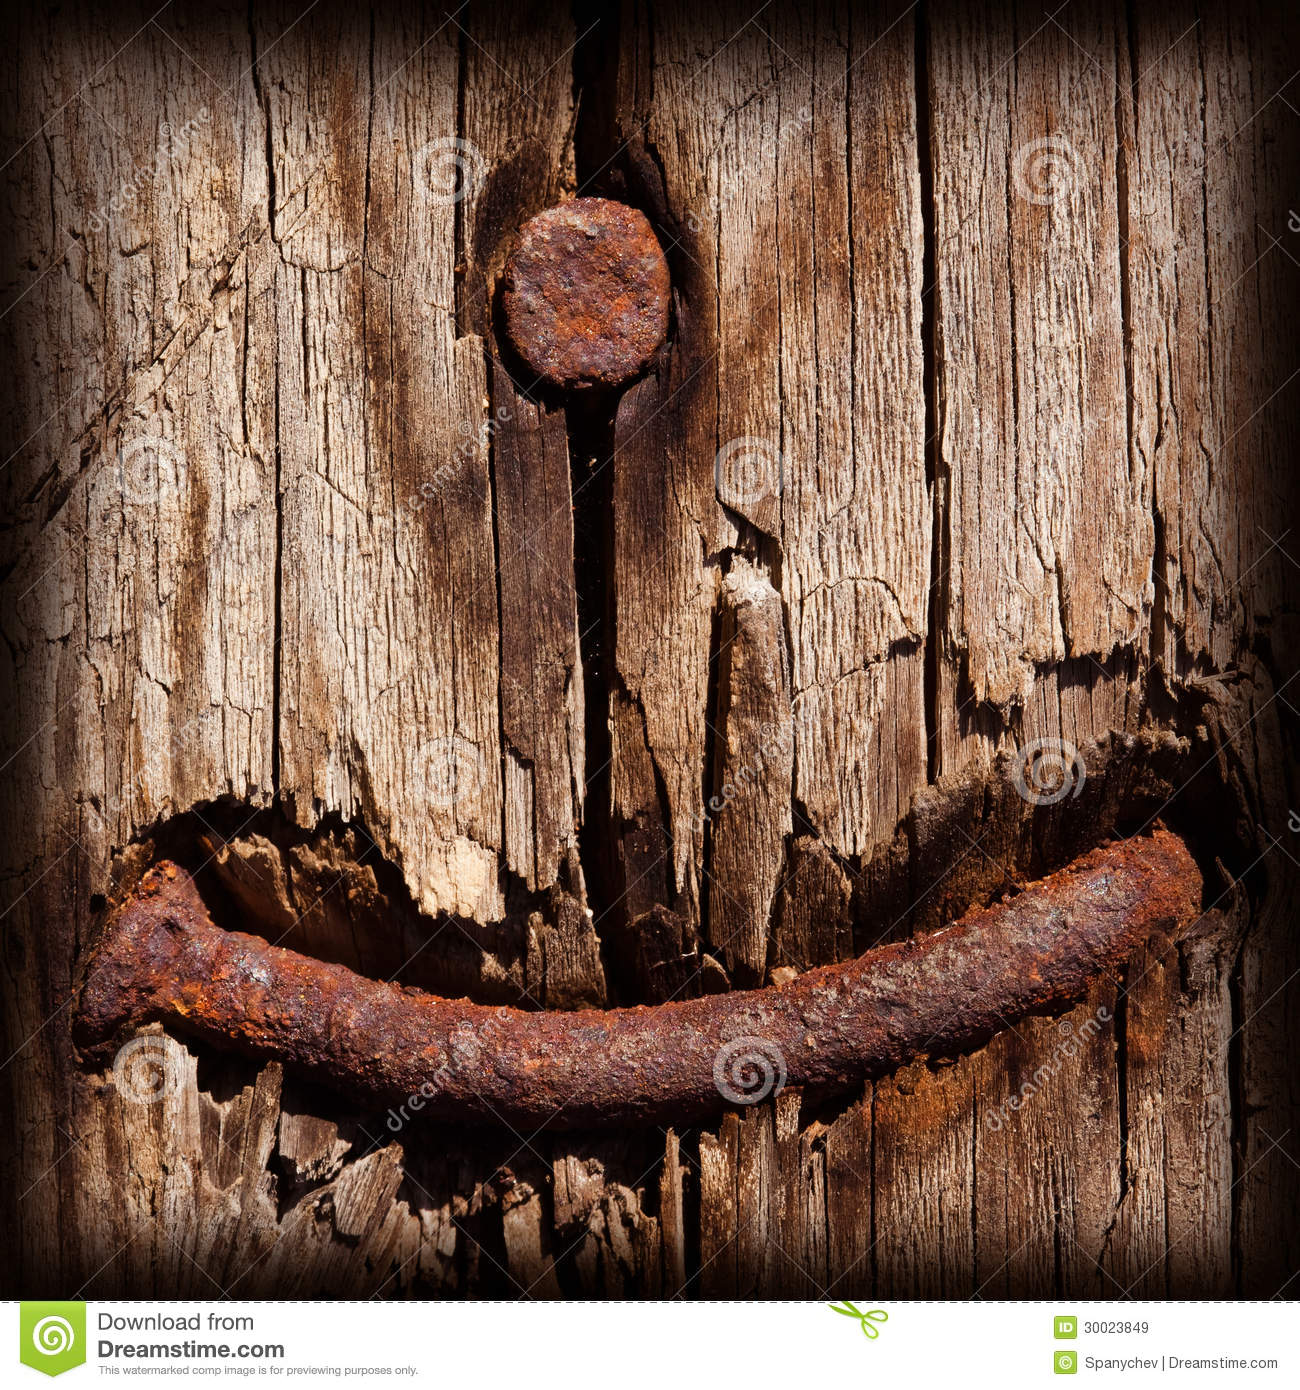 Rusty Nail Royalty Free Stock Images - Image: 30023849